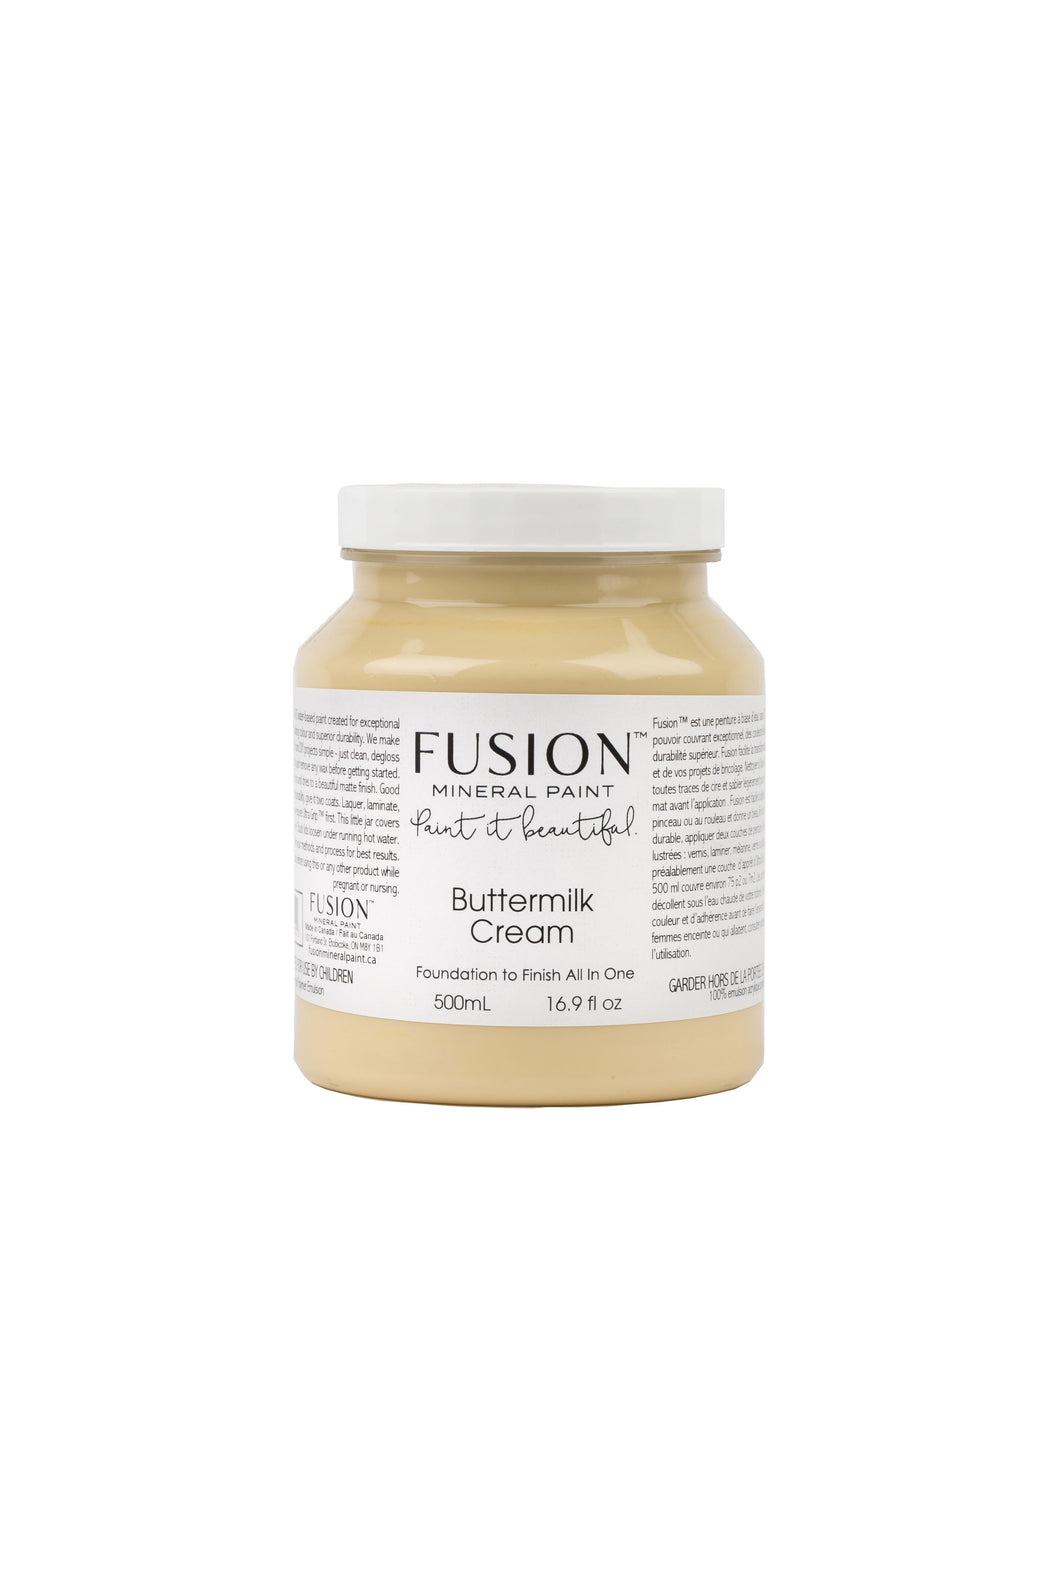 Fusion mineral paint | Buttermilk Cream | 500ml | Colour Me KT